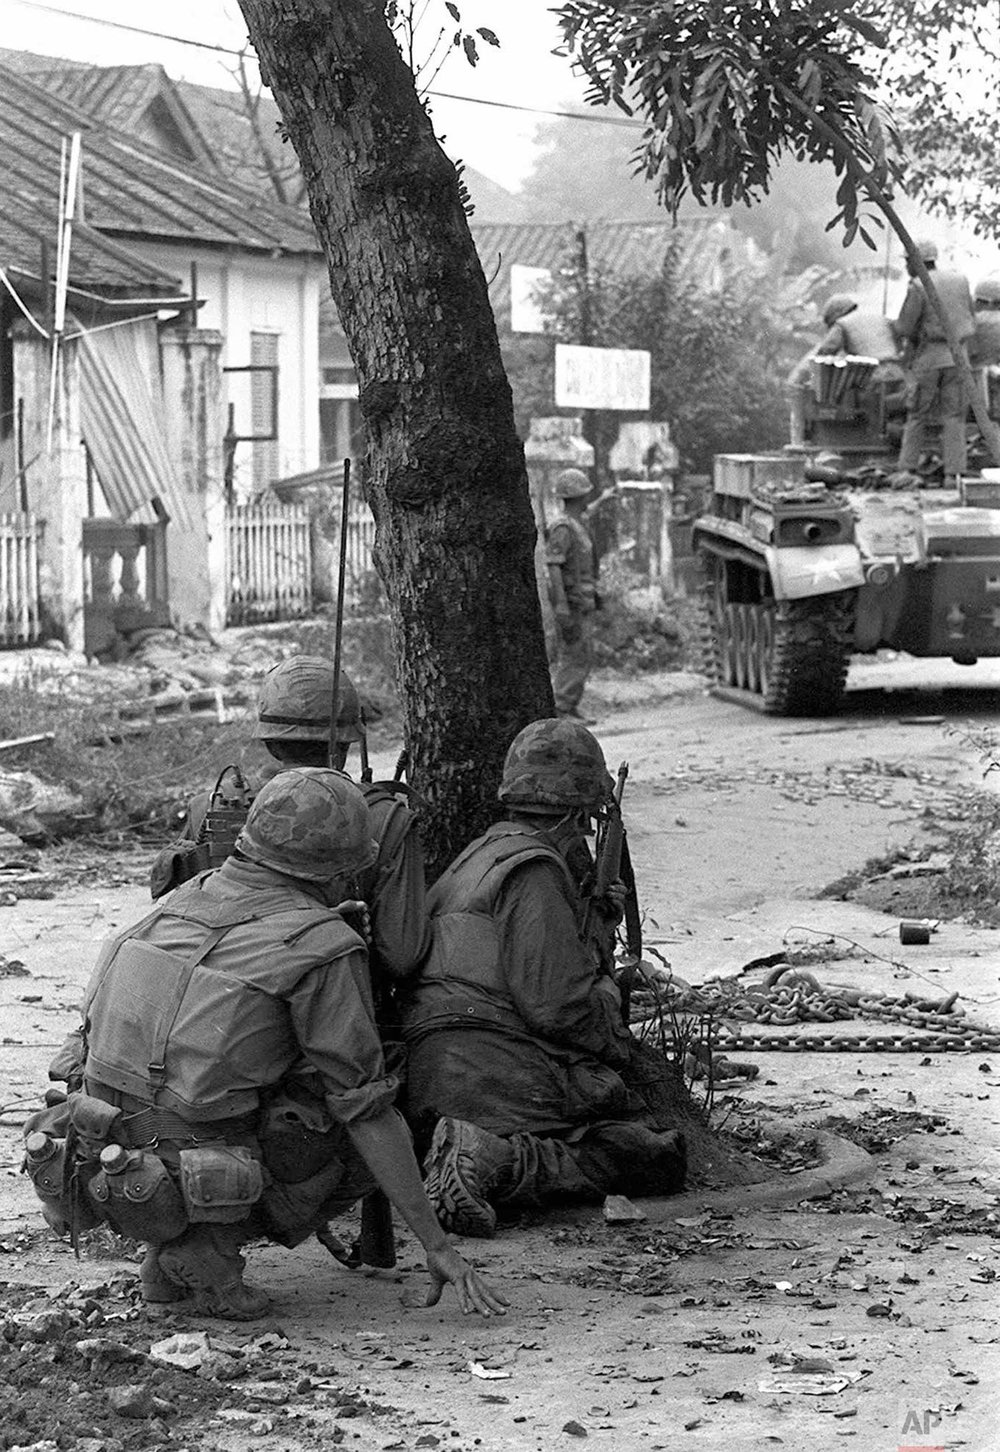 U.S. Marines, supplemented by a tank, take cover behind a tree near the southern bridgehead on the Perfume River, in Hue, Vietnam, Feb. 4, 1968 as they fight well-armed North Vietnamese troops for the fifth straight day. The communists continued to hold on to the major portion of the city. (AP Photo)